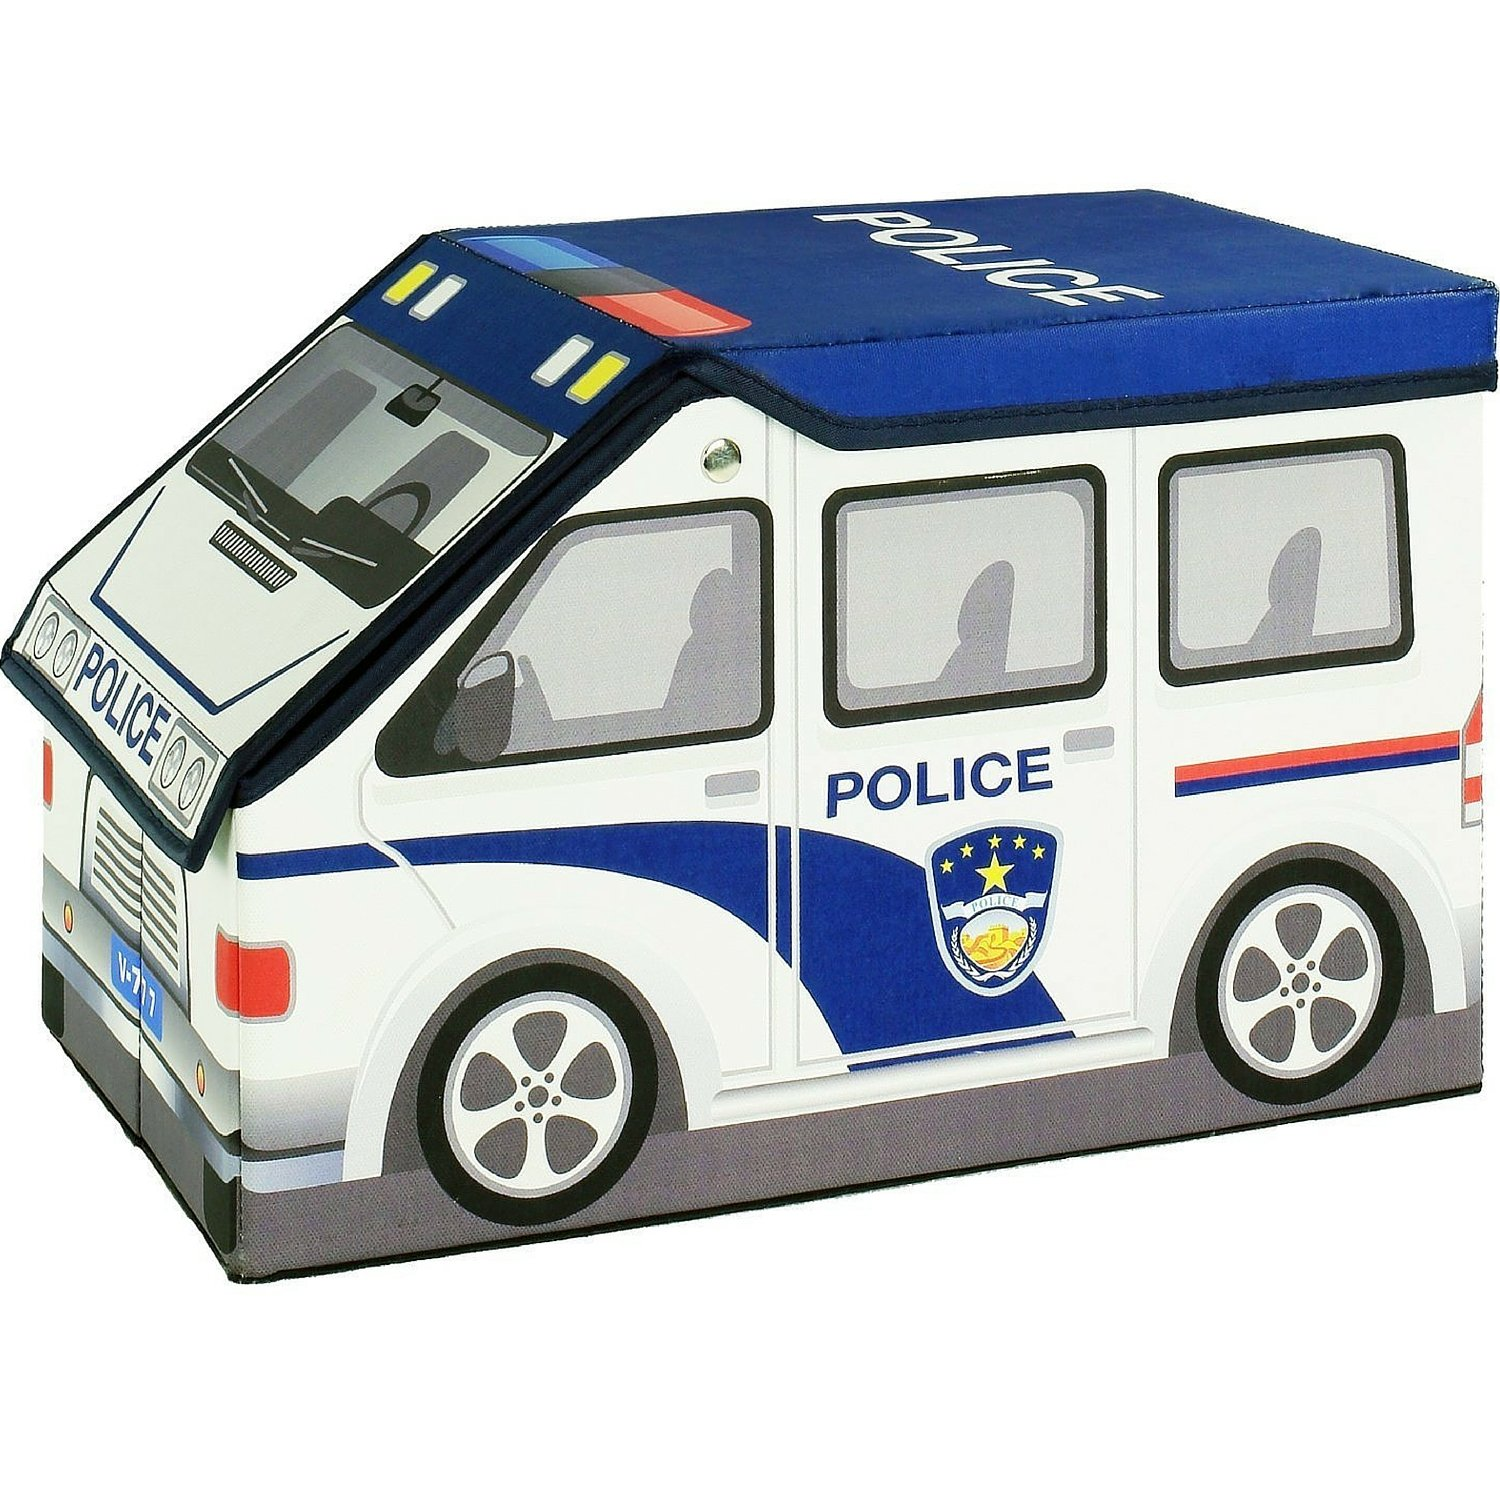 amazoncom 2 in 1 police car childrens toy and storage box with kids 3d puzzle of adventure ship toys games